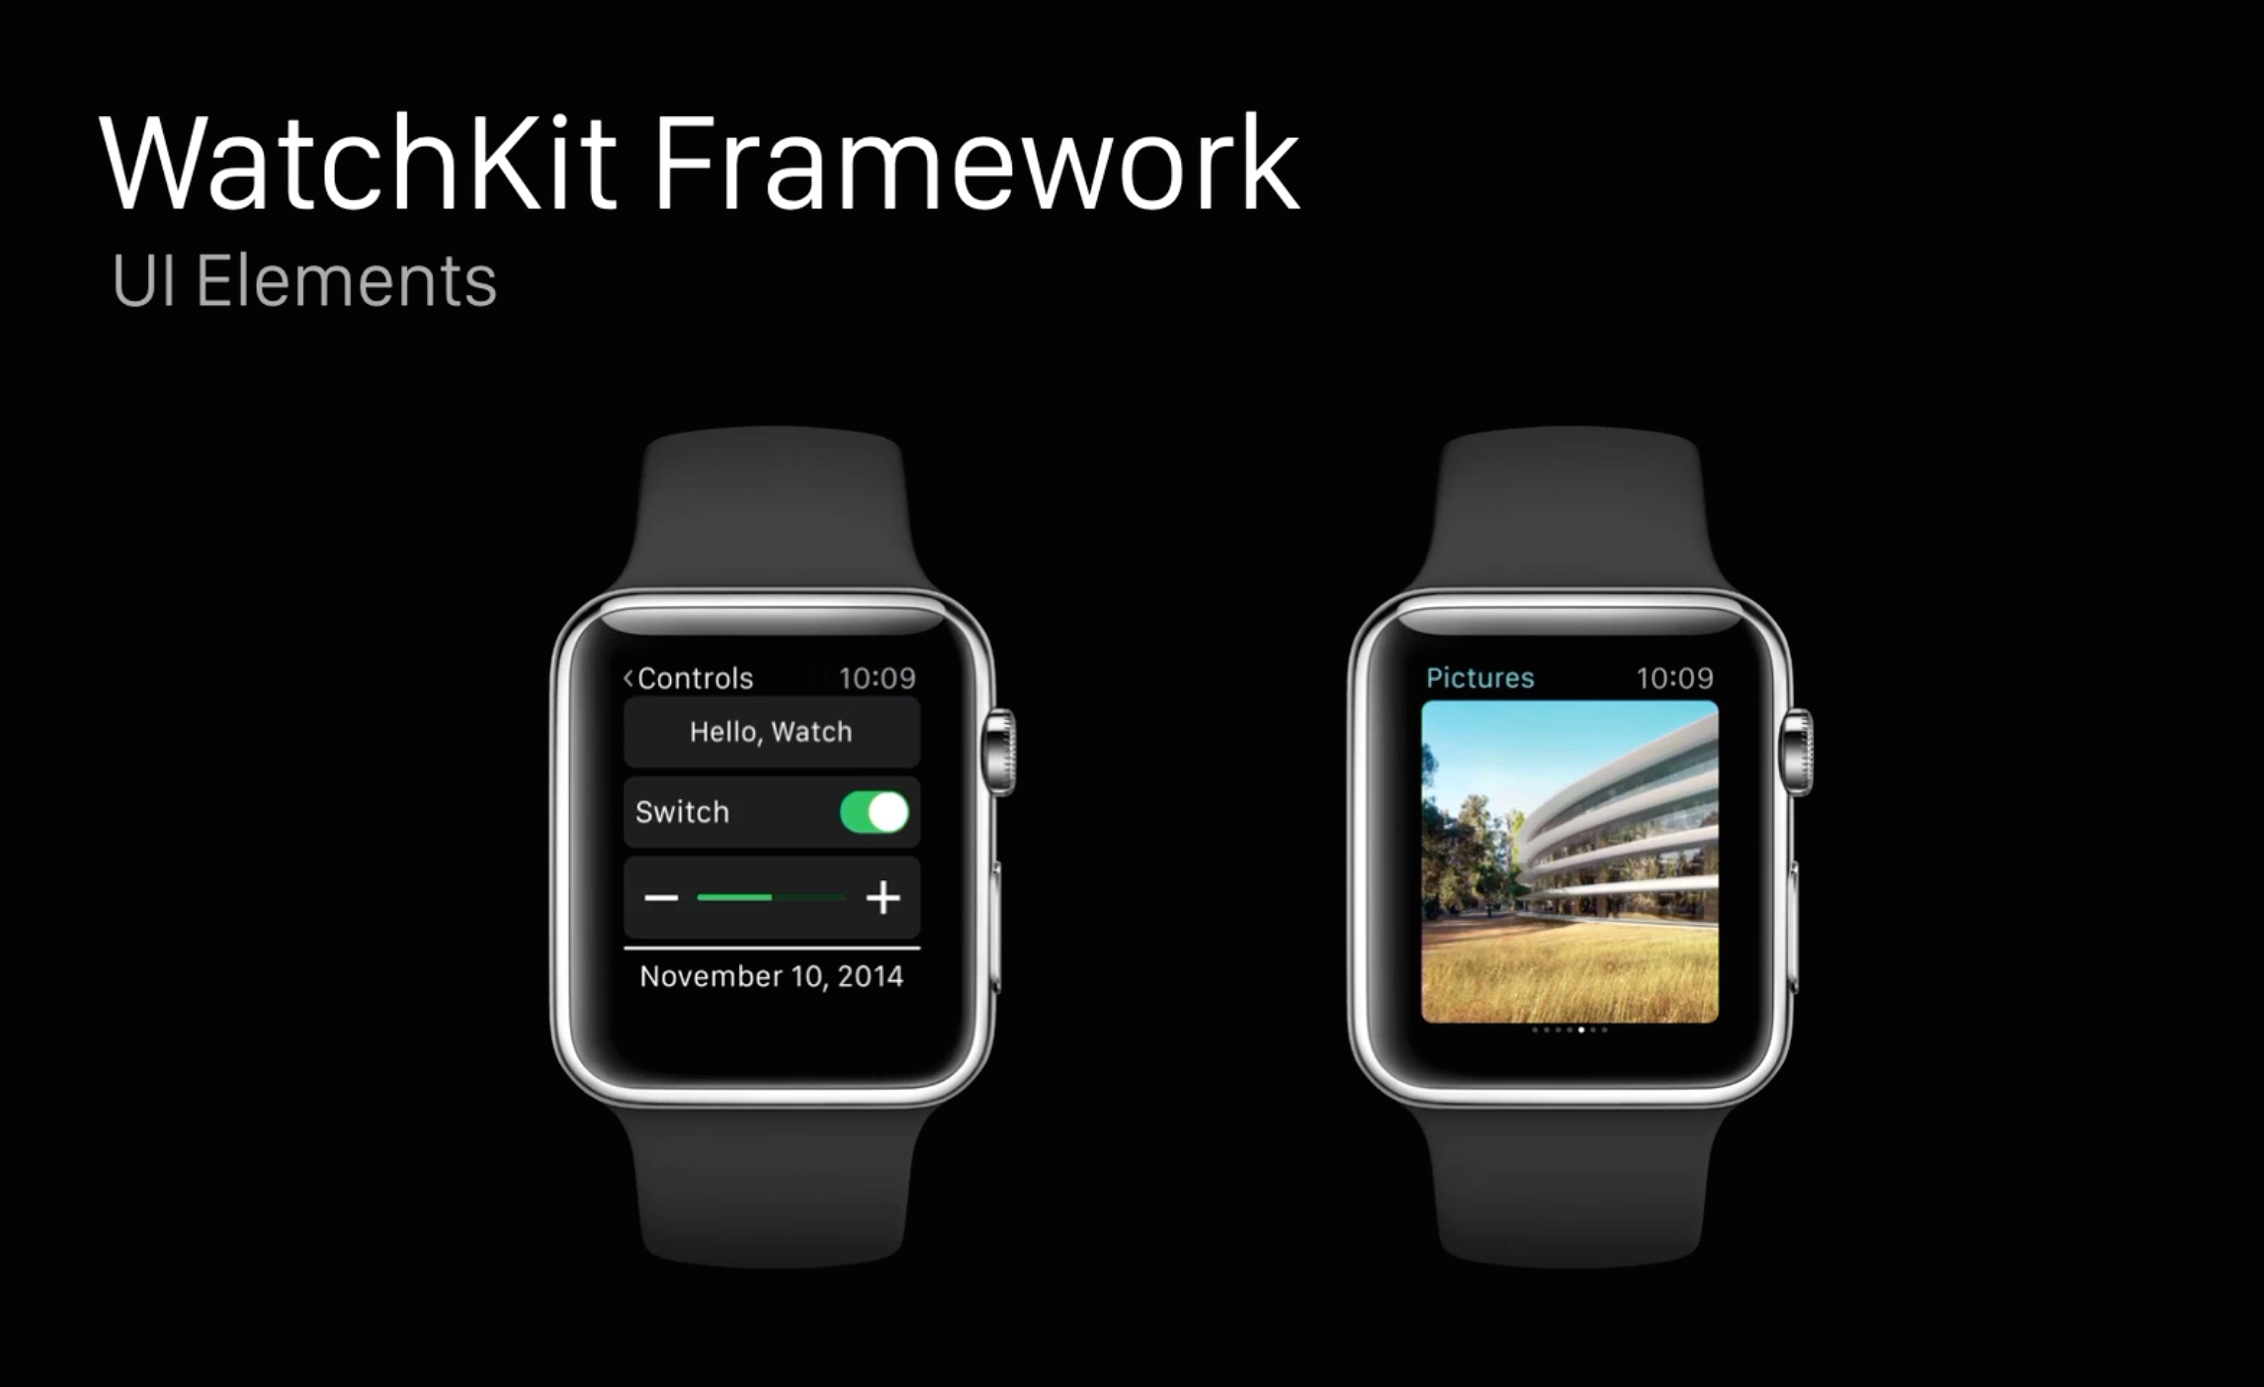 Apple Watch (Watchkit Framework, slide 001)